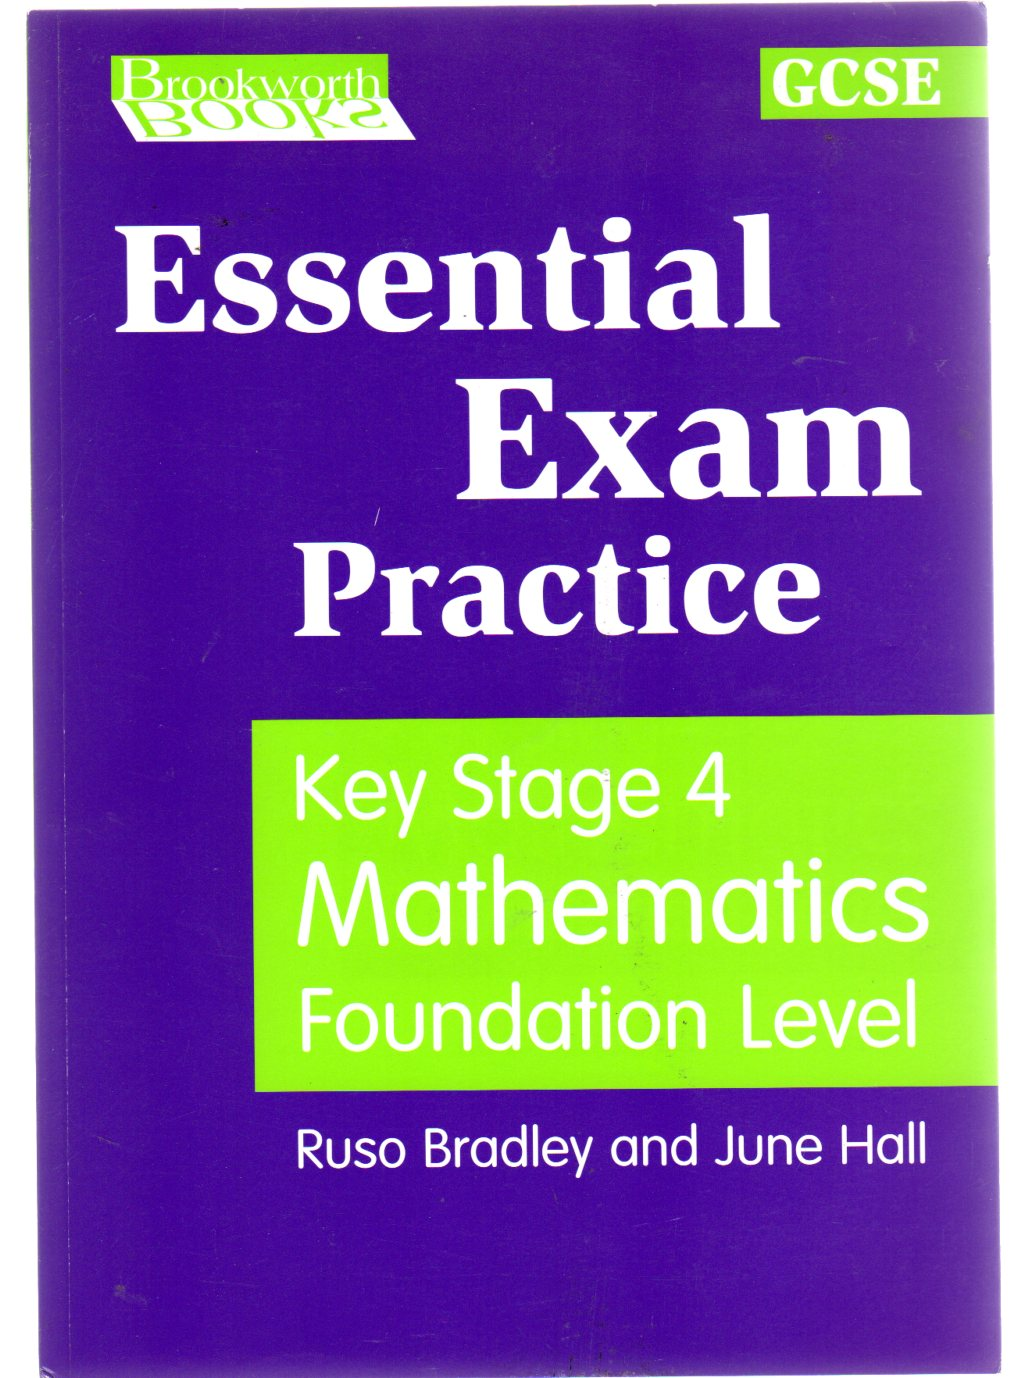 Image for Essential Exam Practice GCSE Foundation Mathematics  : Key Stage 4